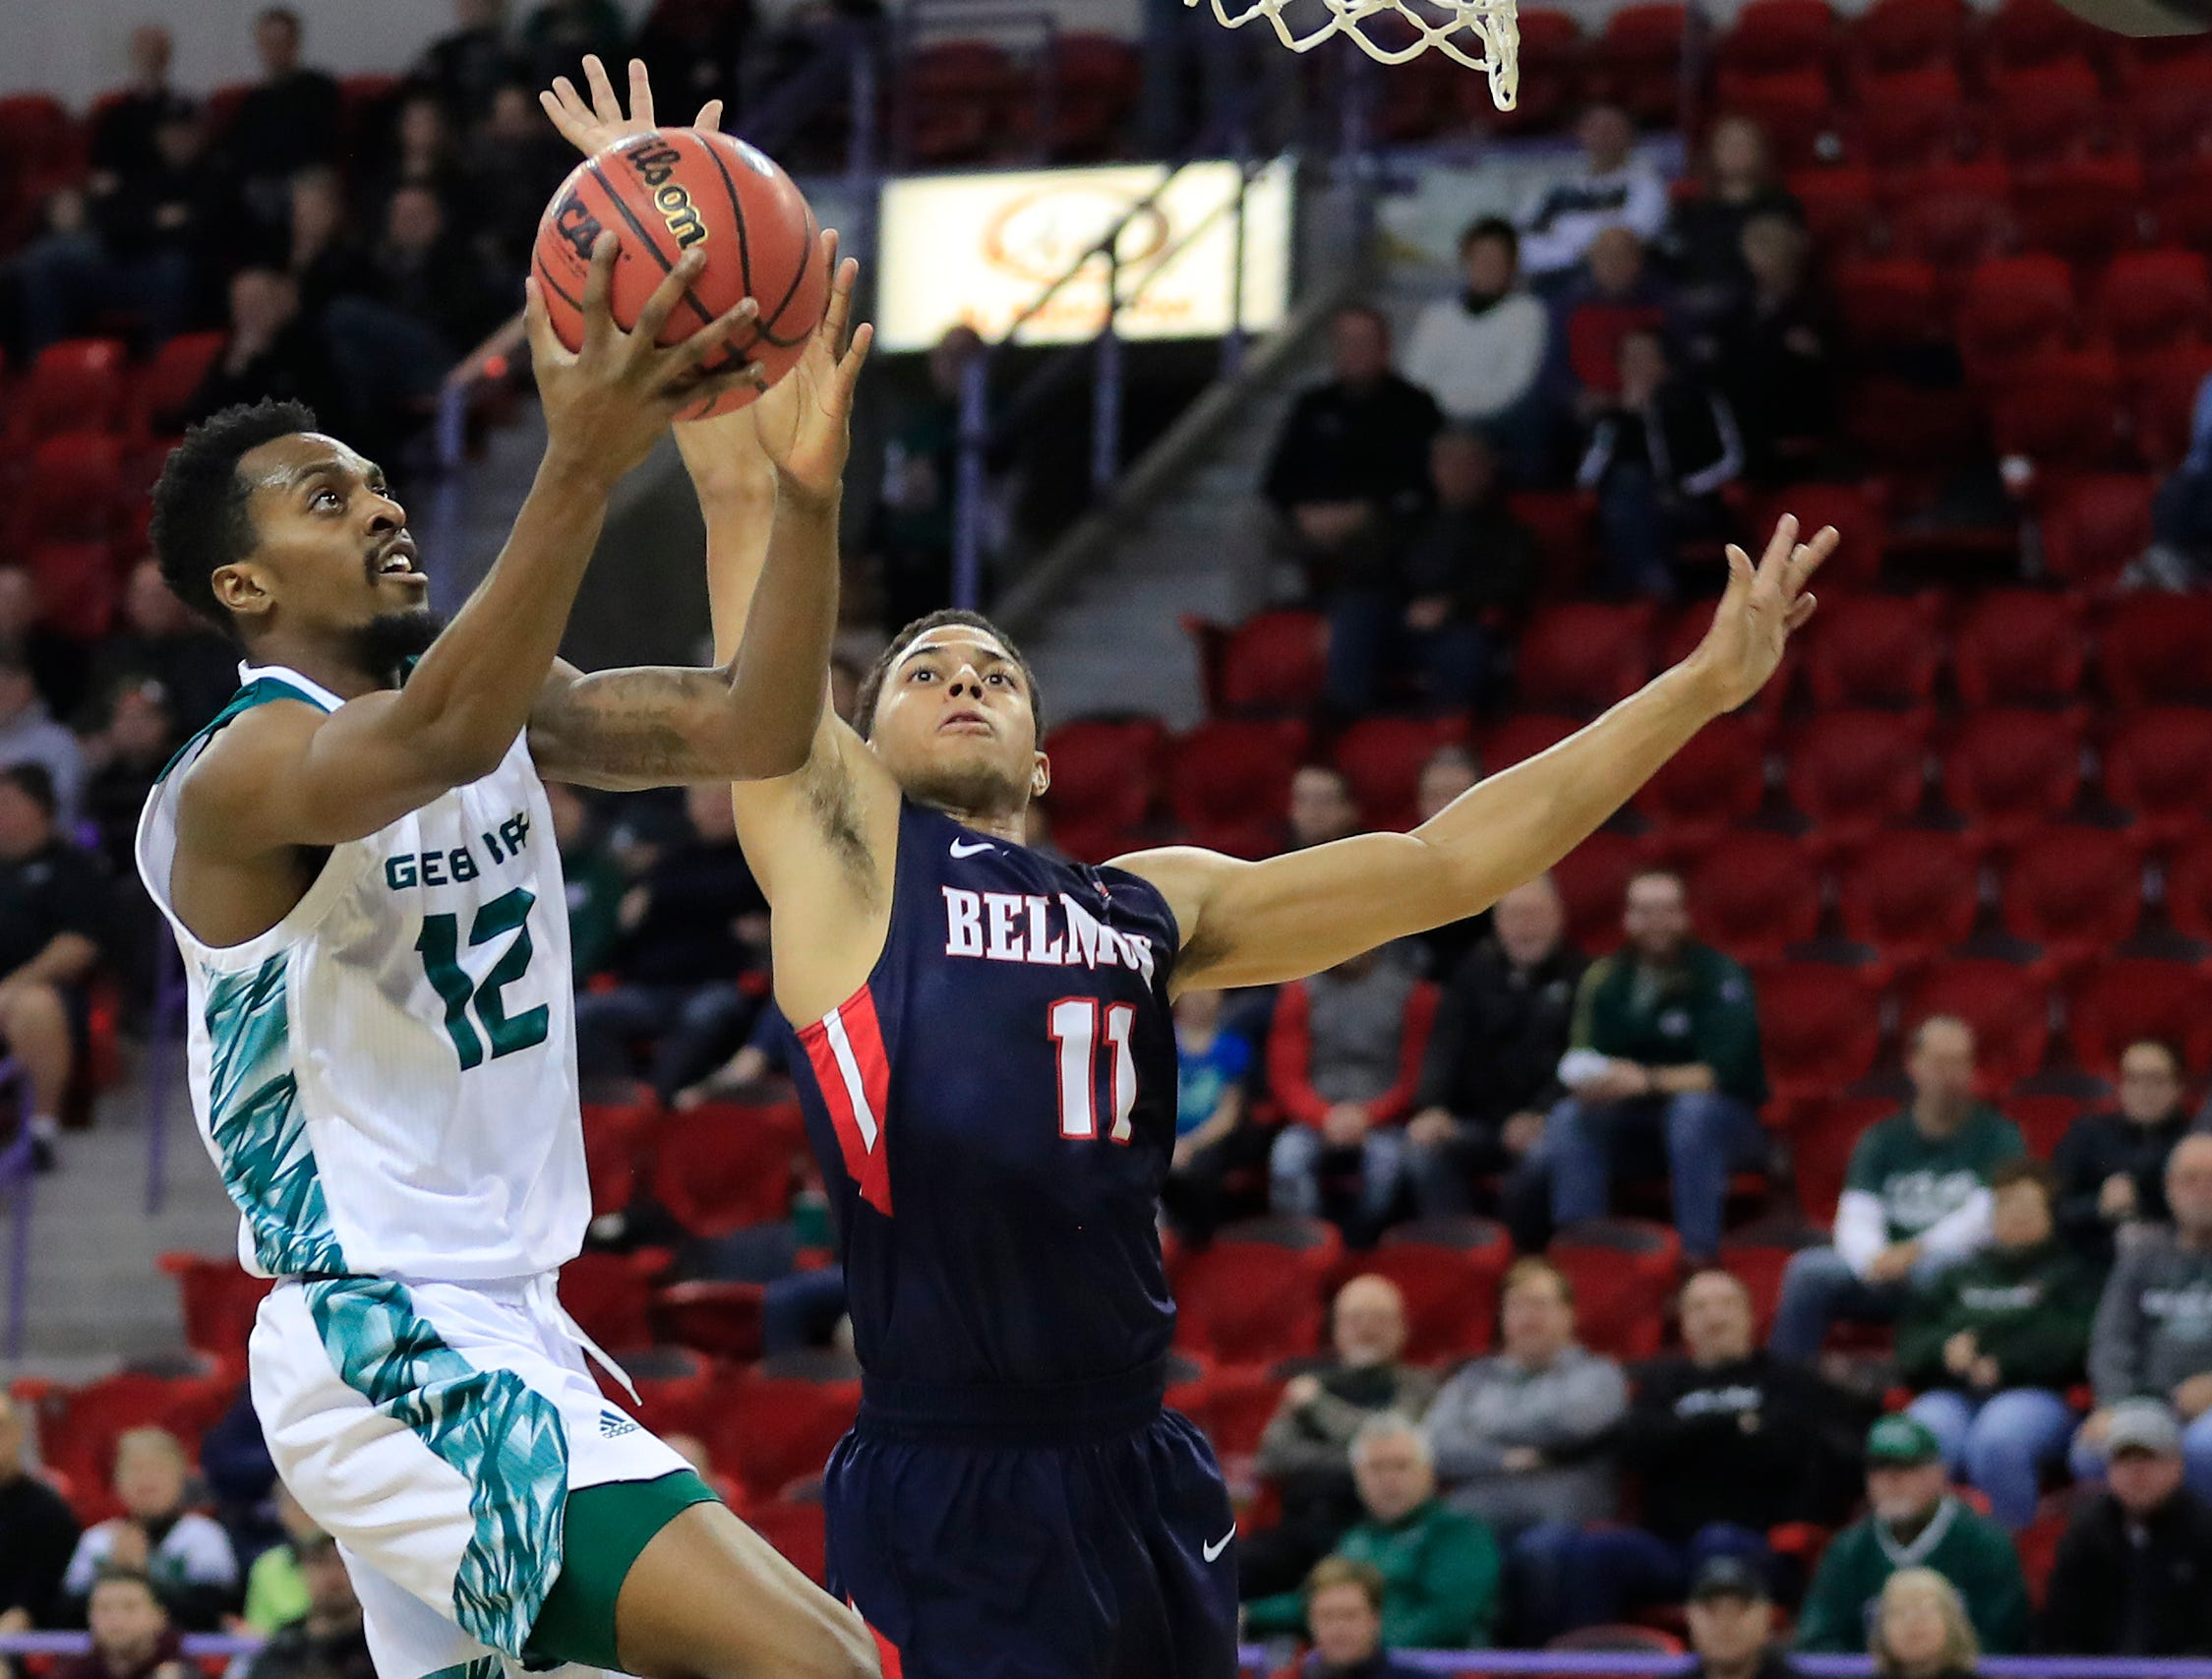 Green Bay Phoenix forward Josh McNair (12) drives to the basket against Belmont Bruins guard Kevin McClain (11) in a NCAA basketball game at the Resch Center on Saturday, December 1, 2018 in Ashwaubenon, Wis.